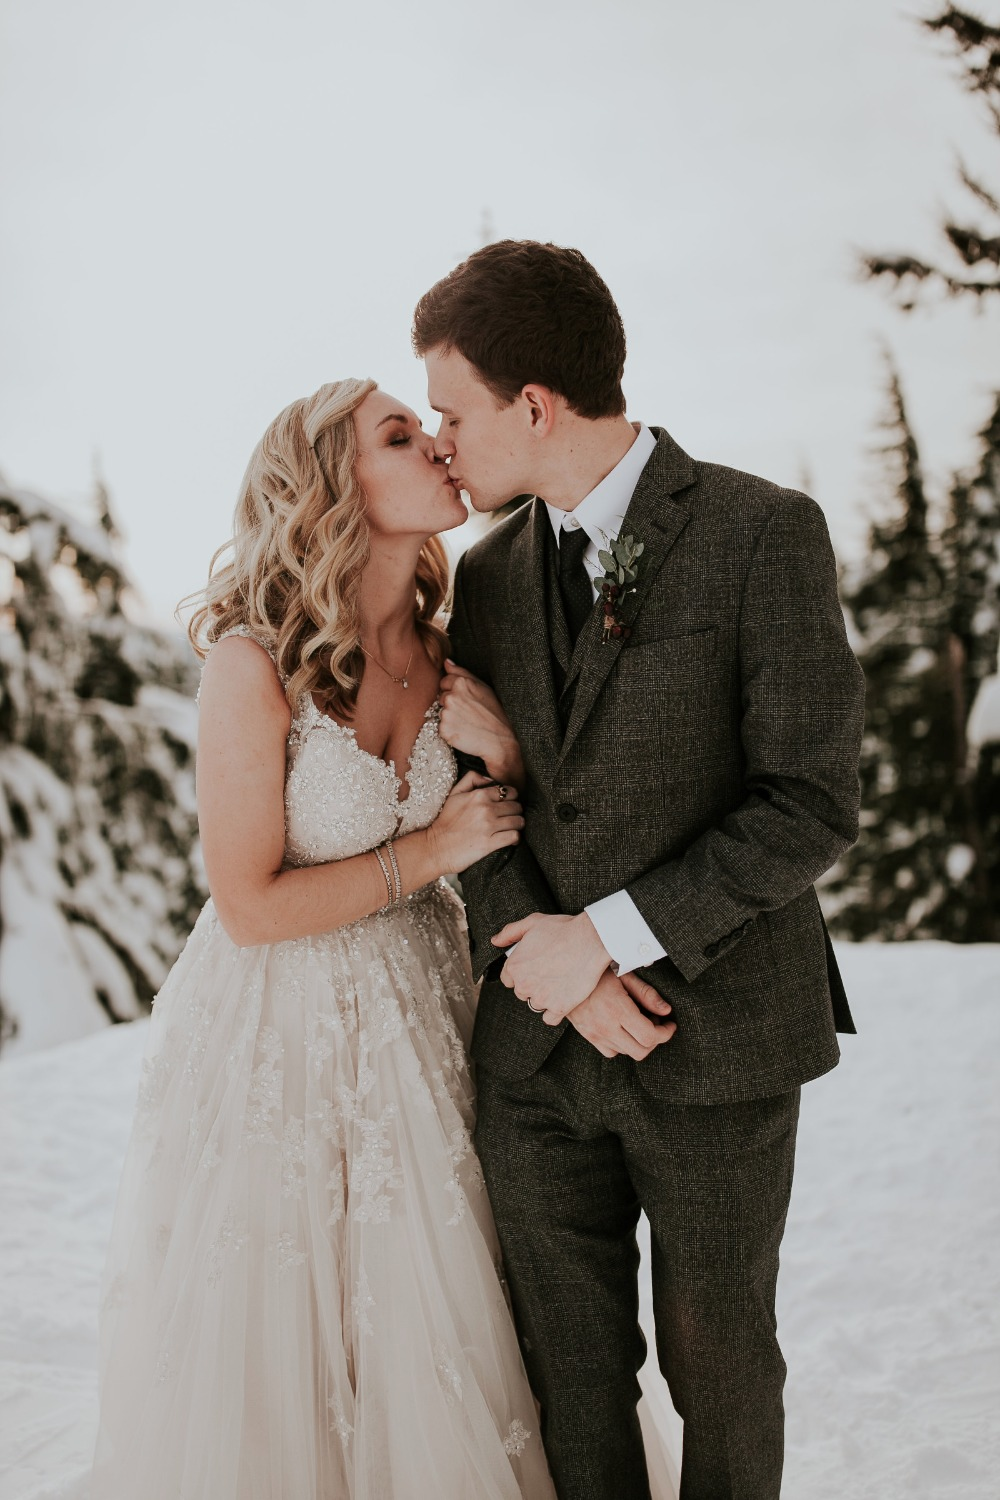 535500_frosty-little-lodge-wedding-at-the-top